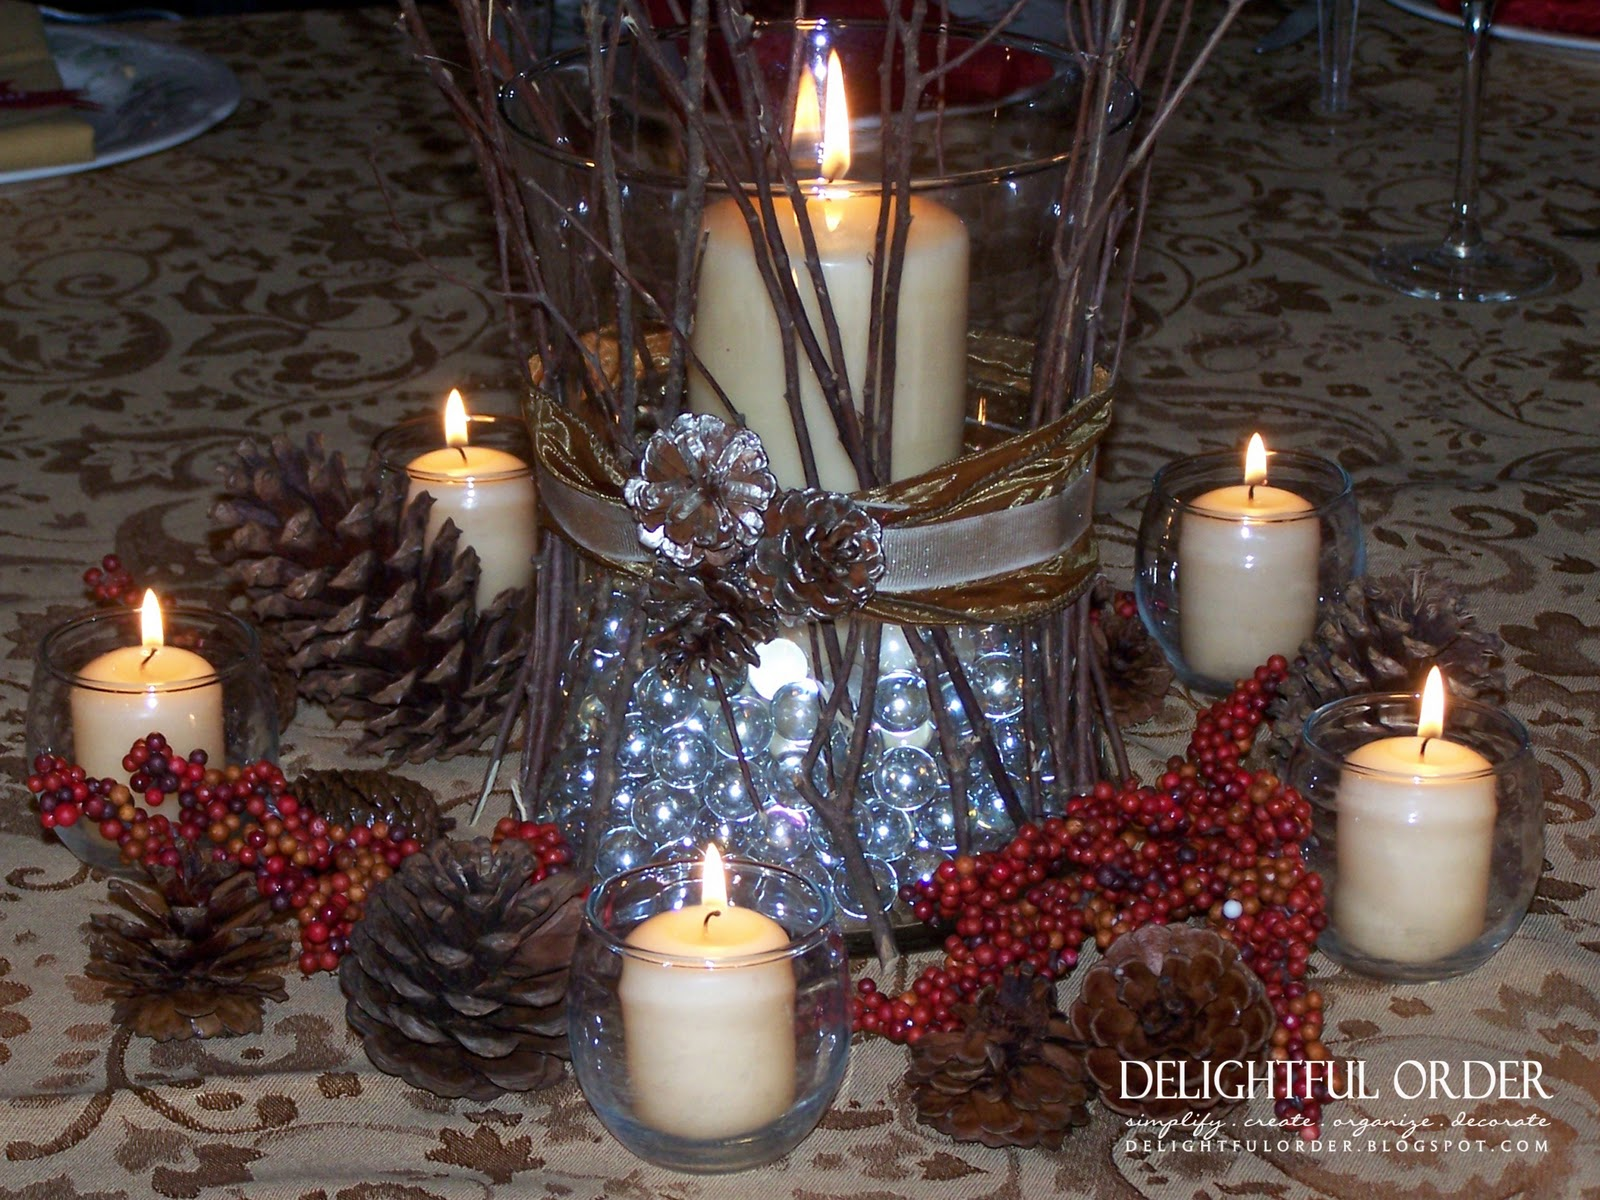 Delightful order thanksgiving table setting ideas